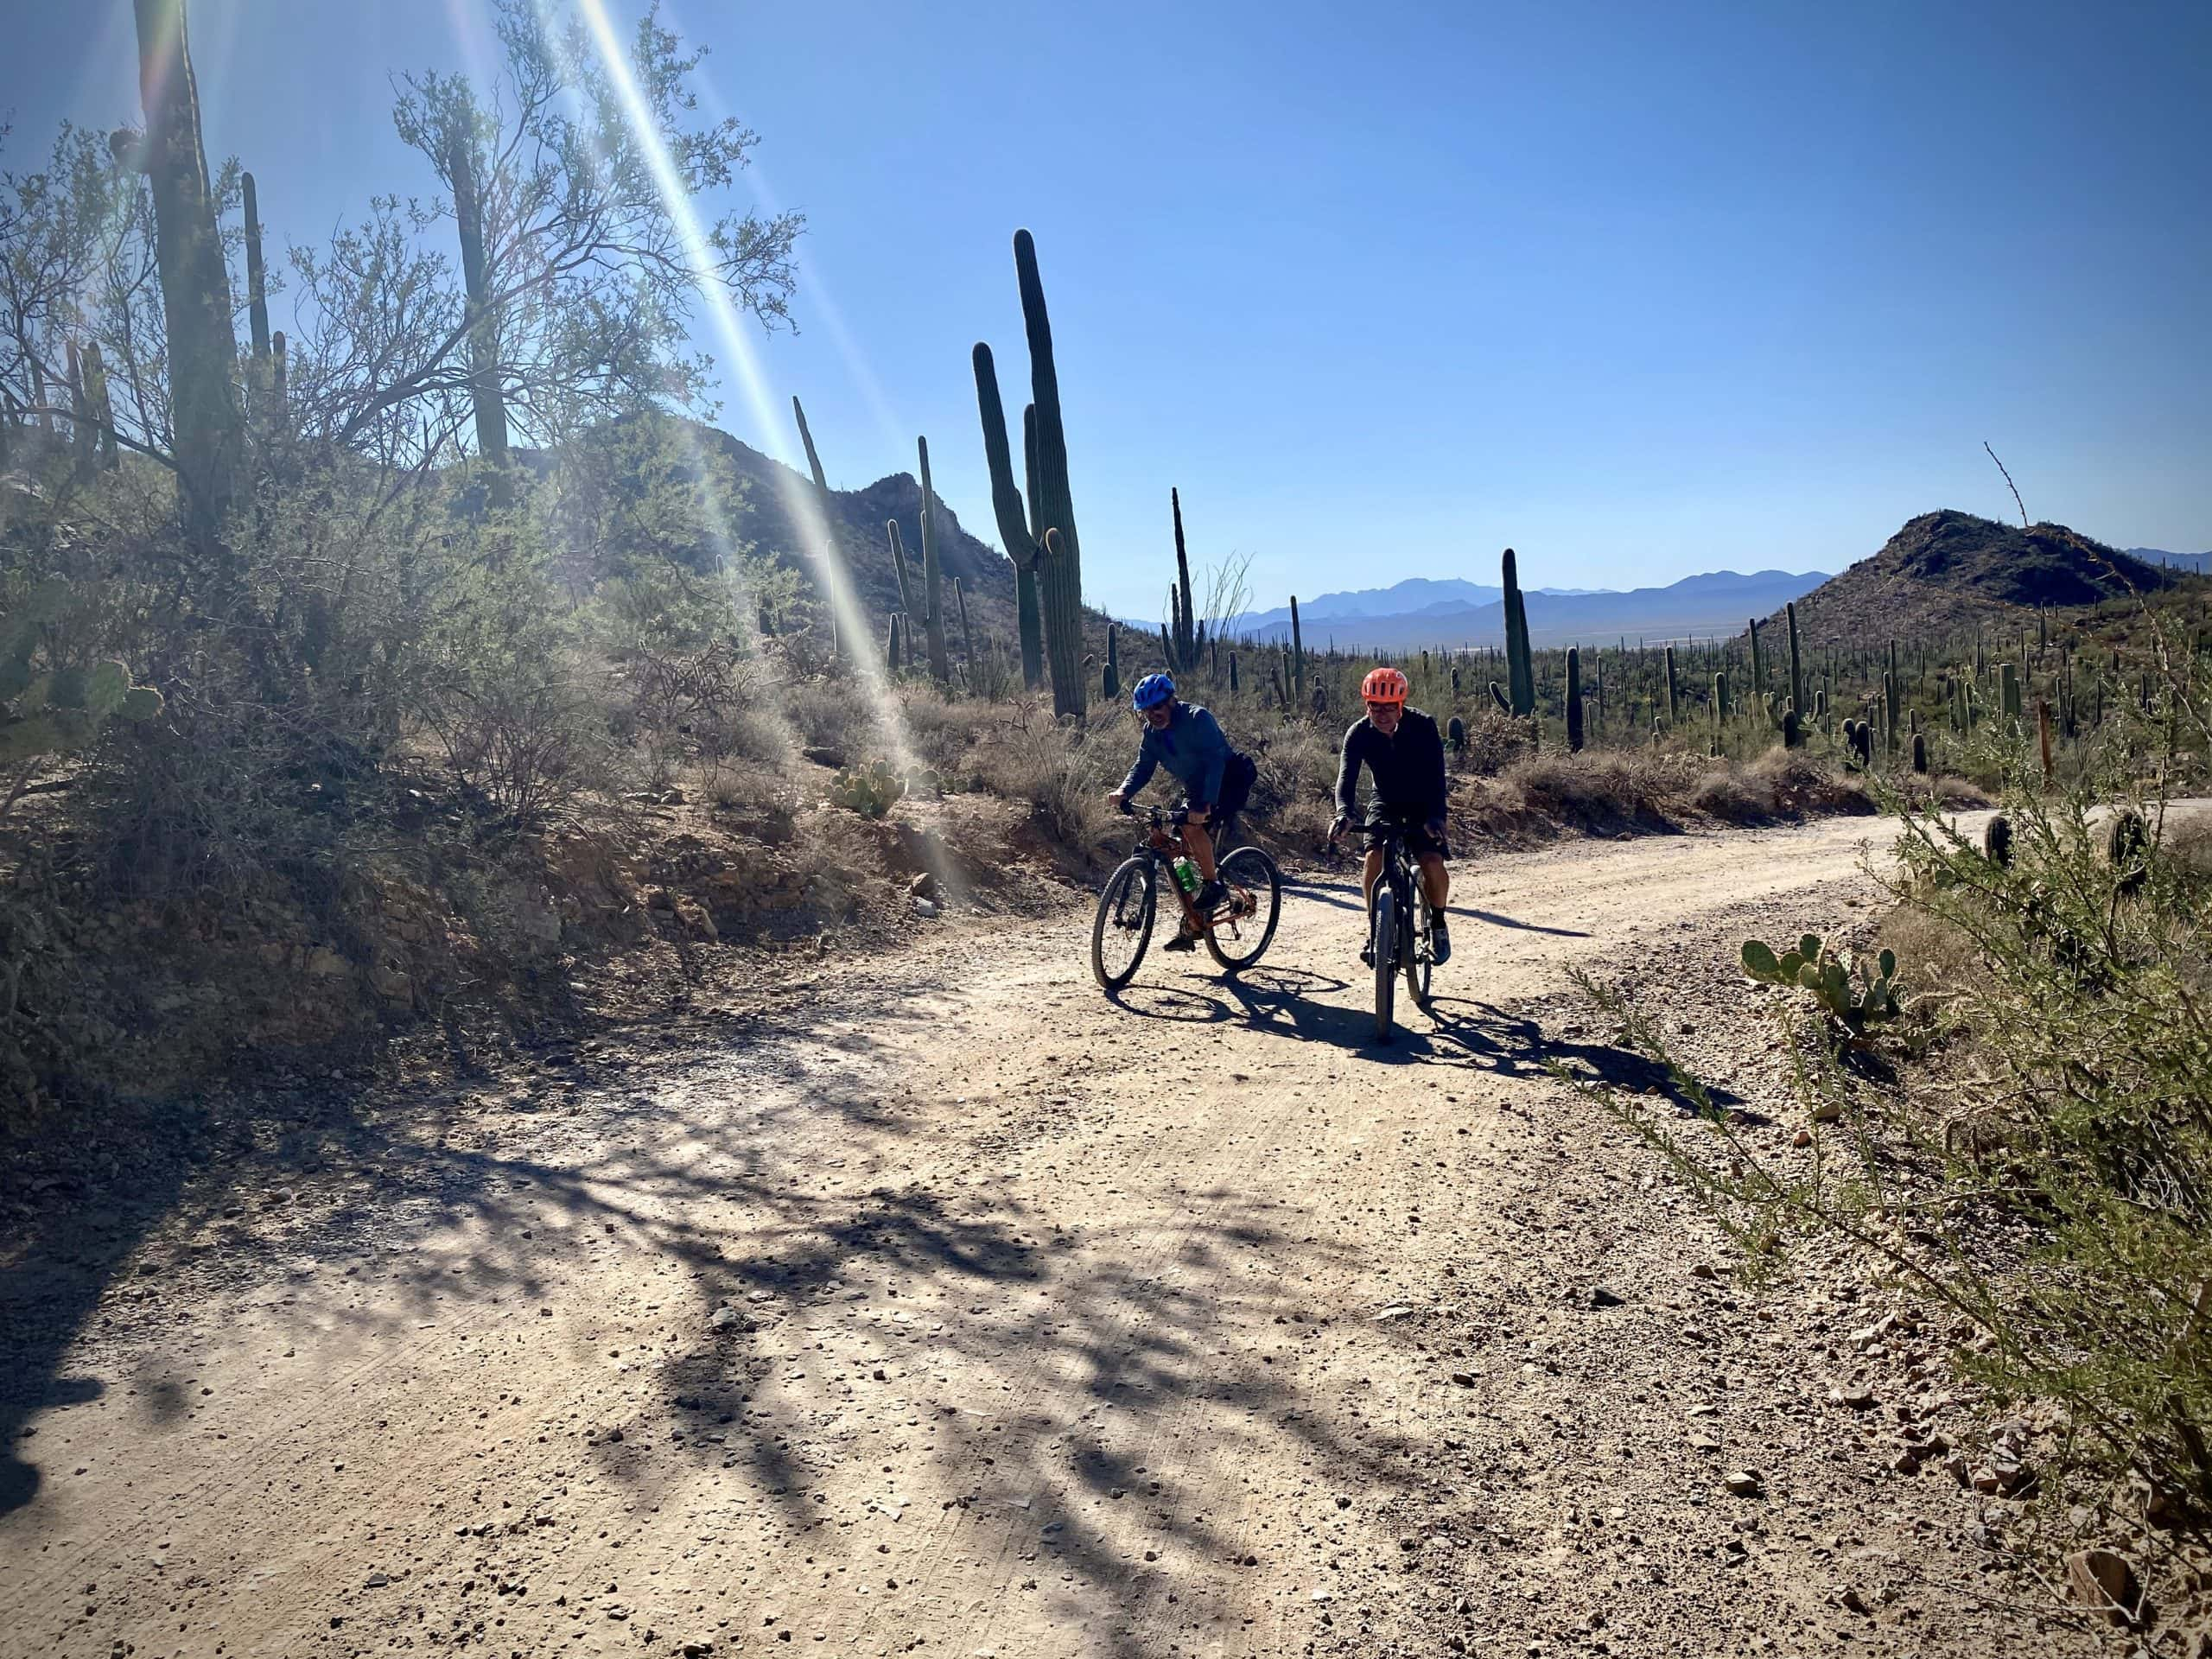 Two cyclists on gravel road in Saguaro National Park near Tucson, AZ.